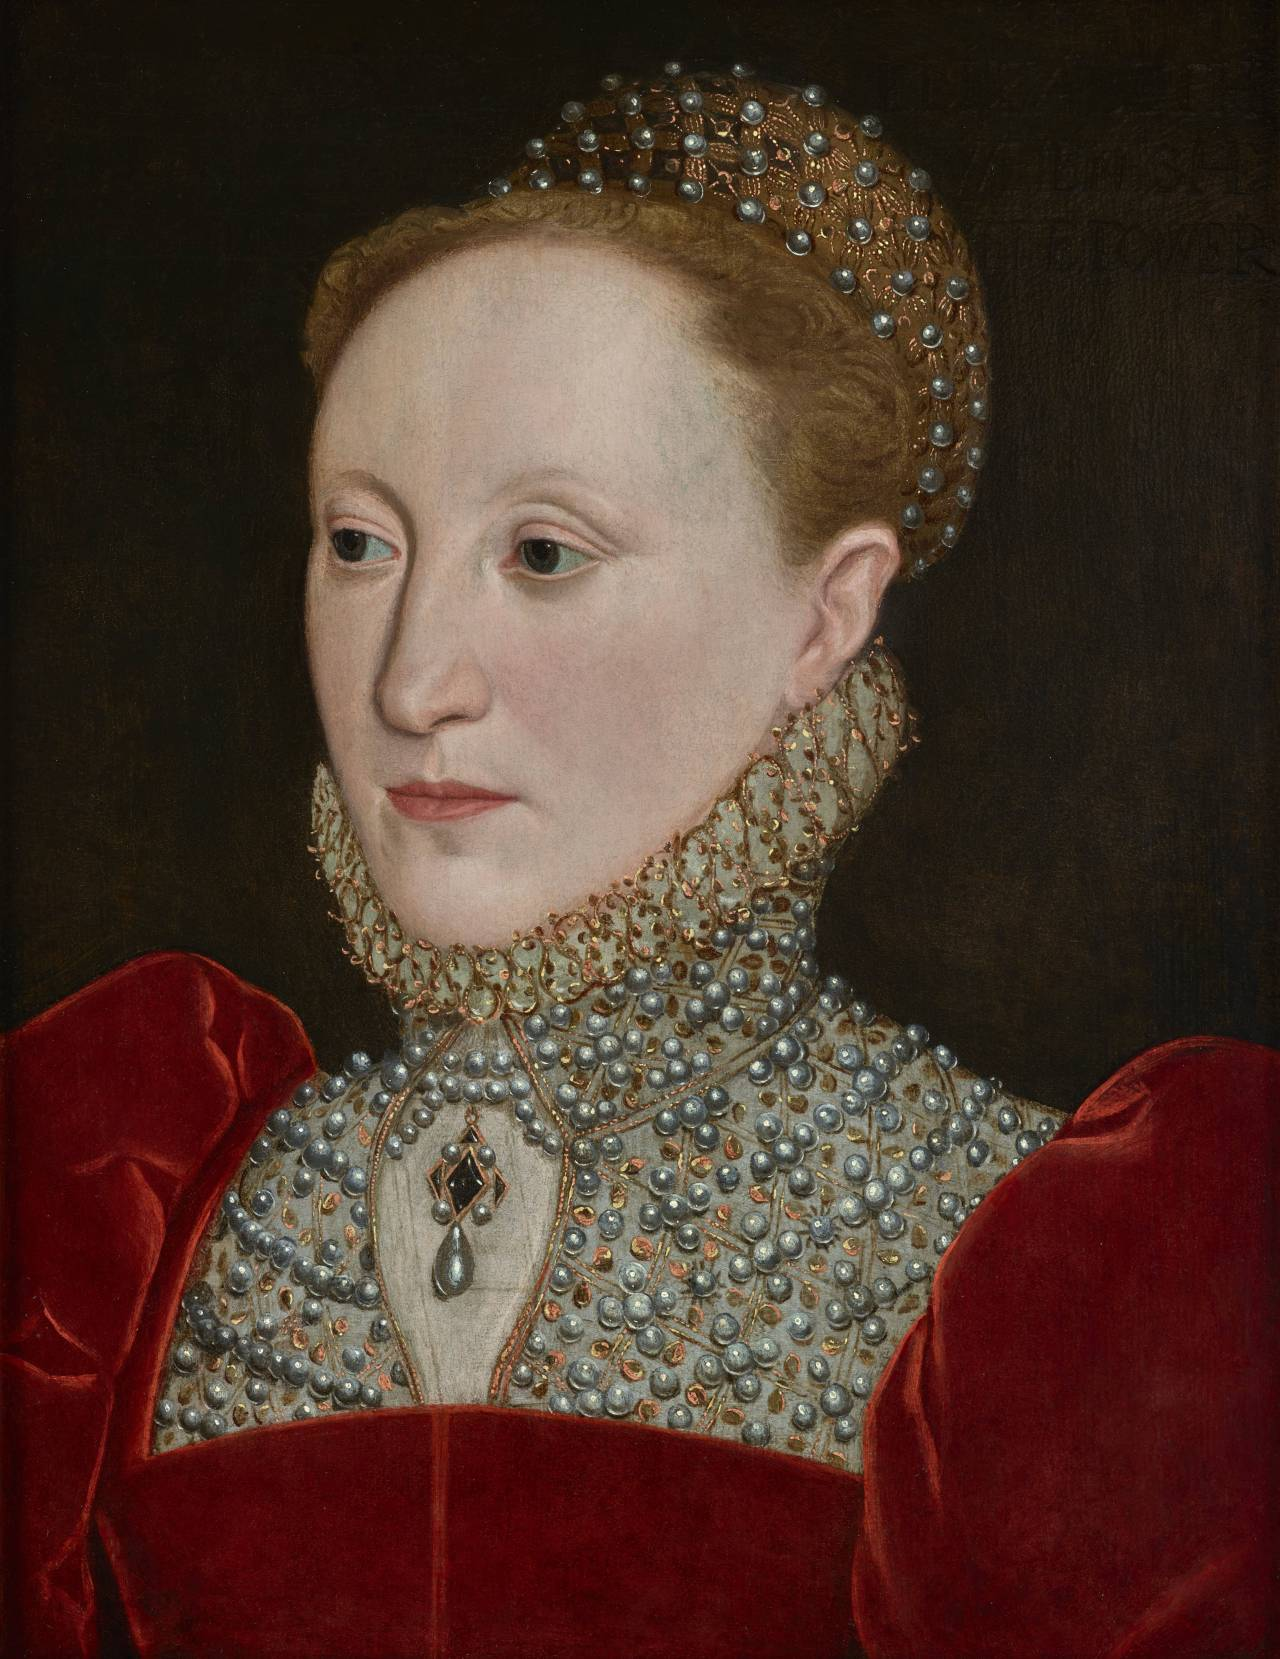 Elizabeth I who visited Kenilworth Castle in 1575